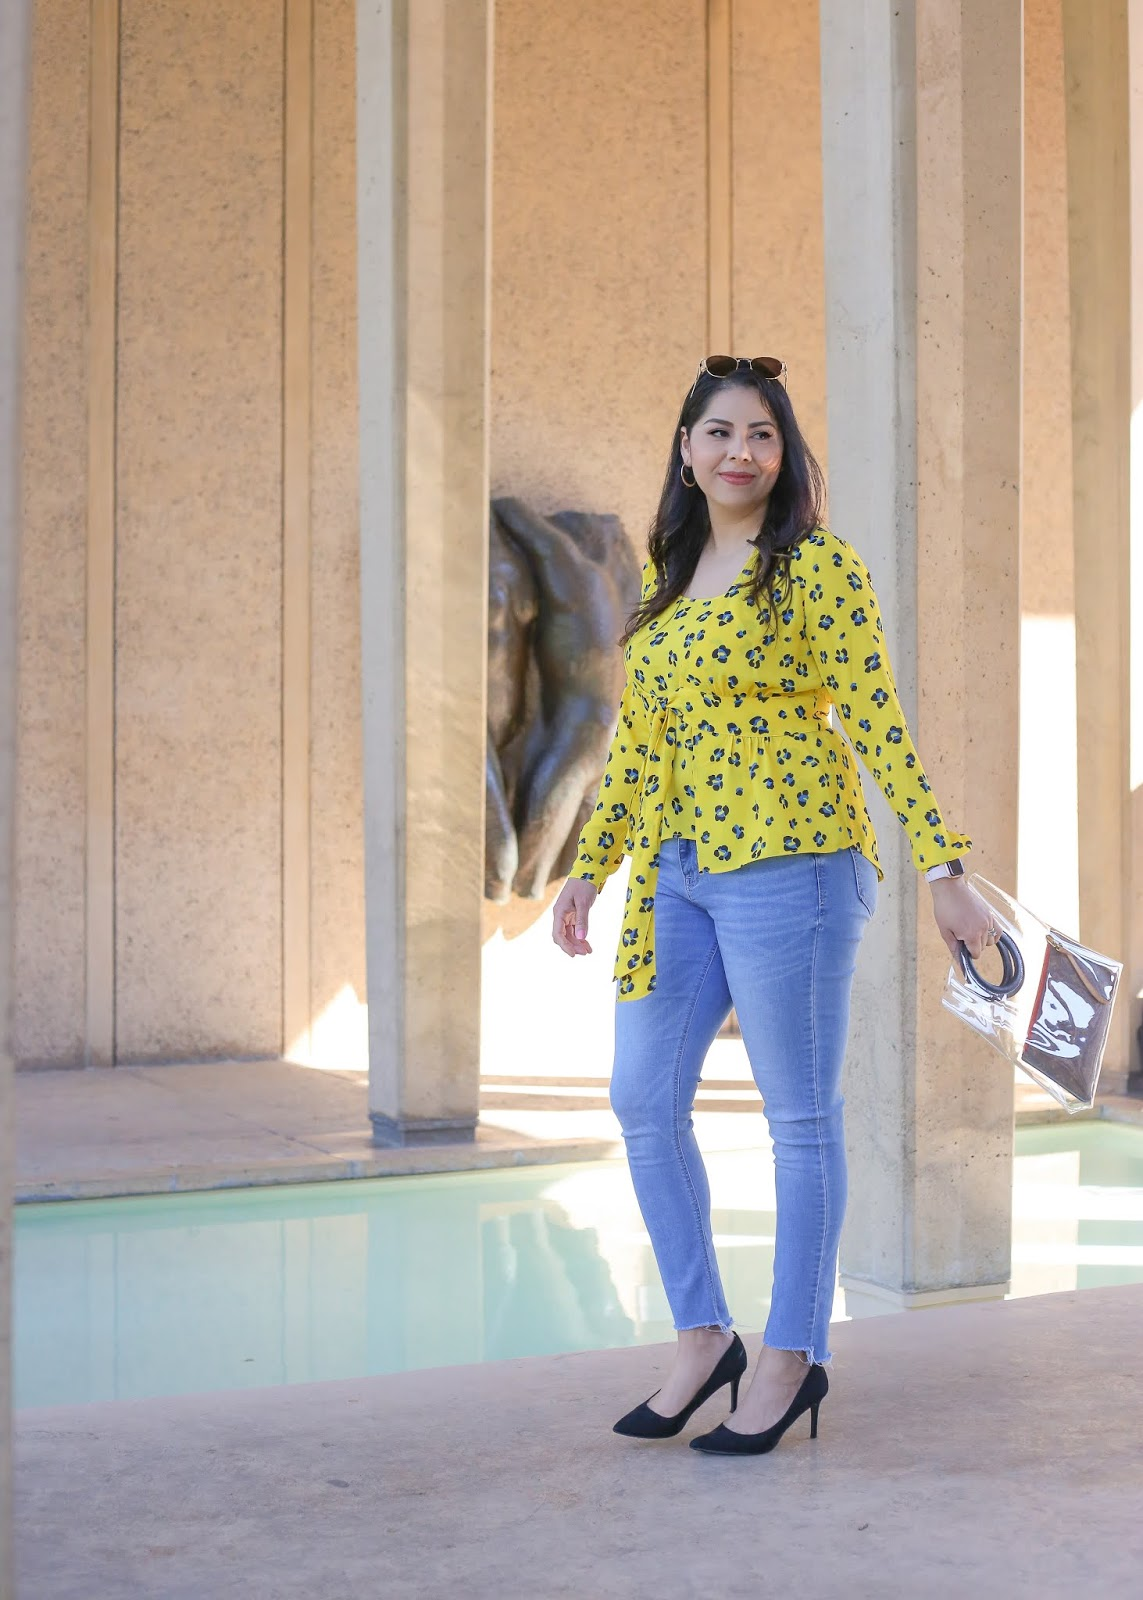 yellow top with jeans outfit idea, how to wear yellow this spring